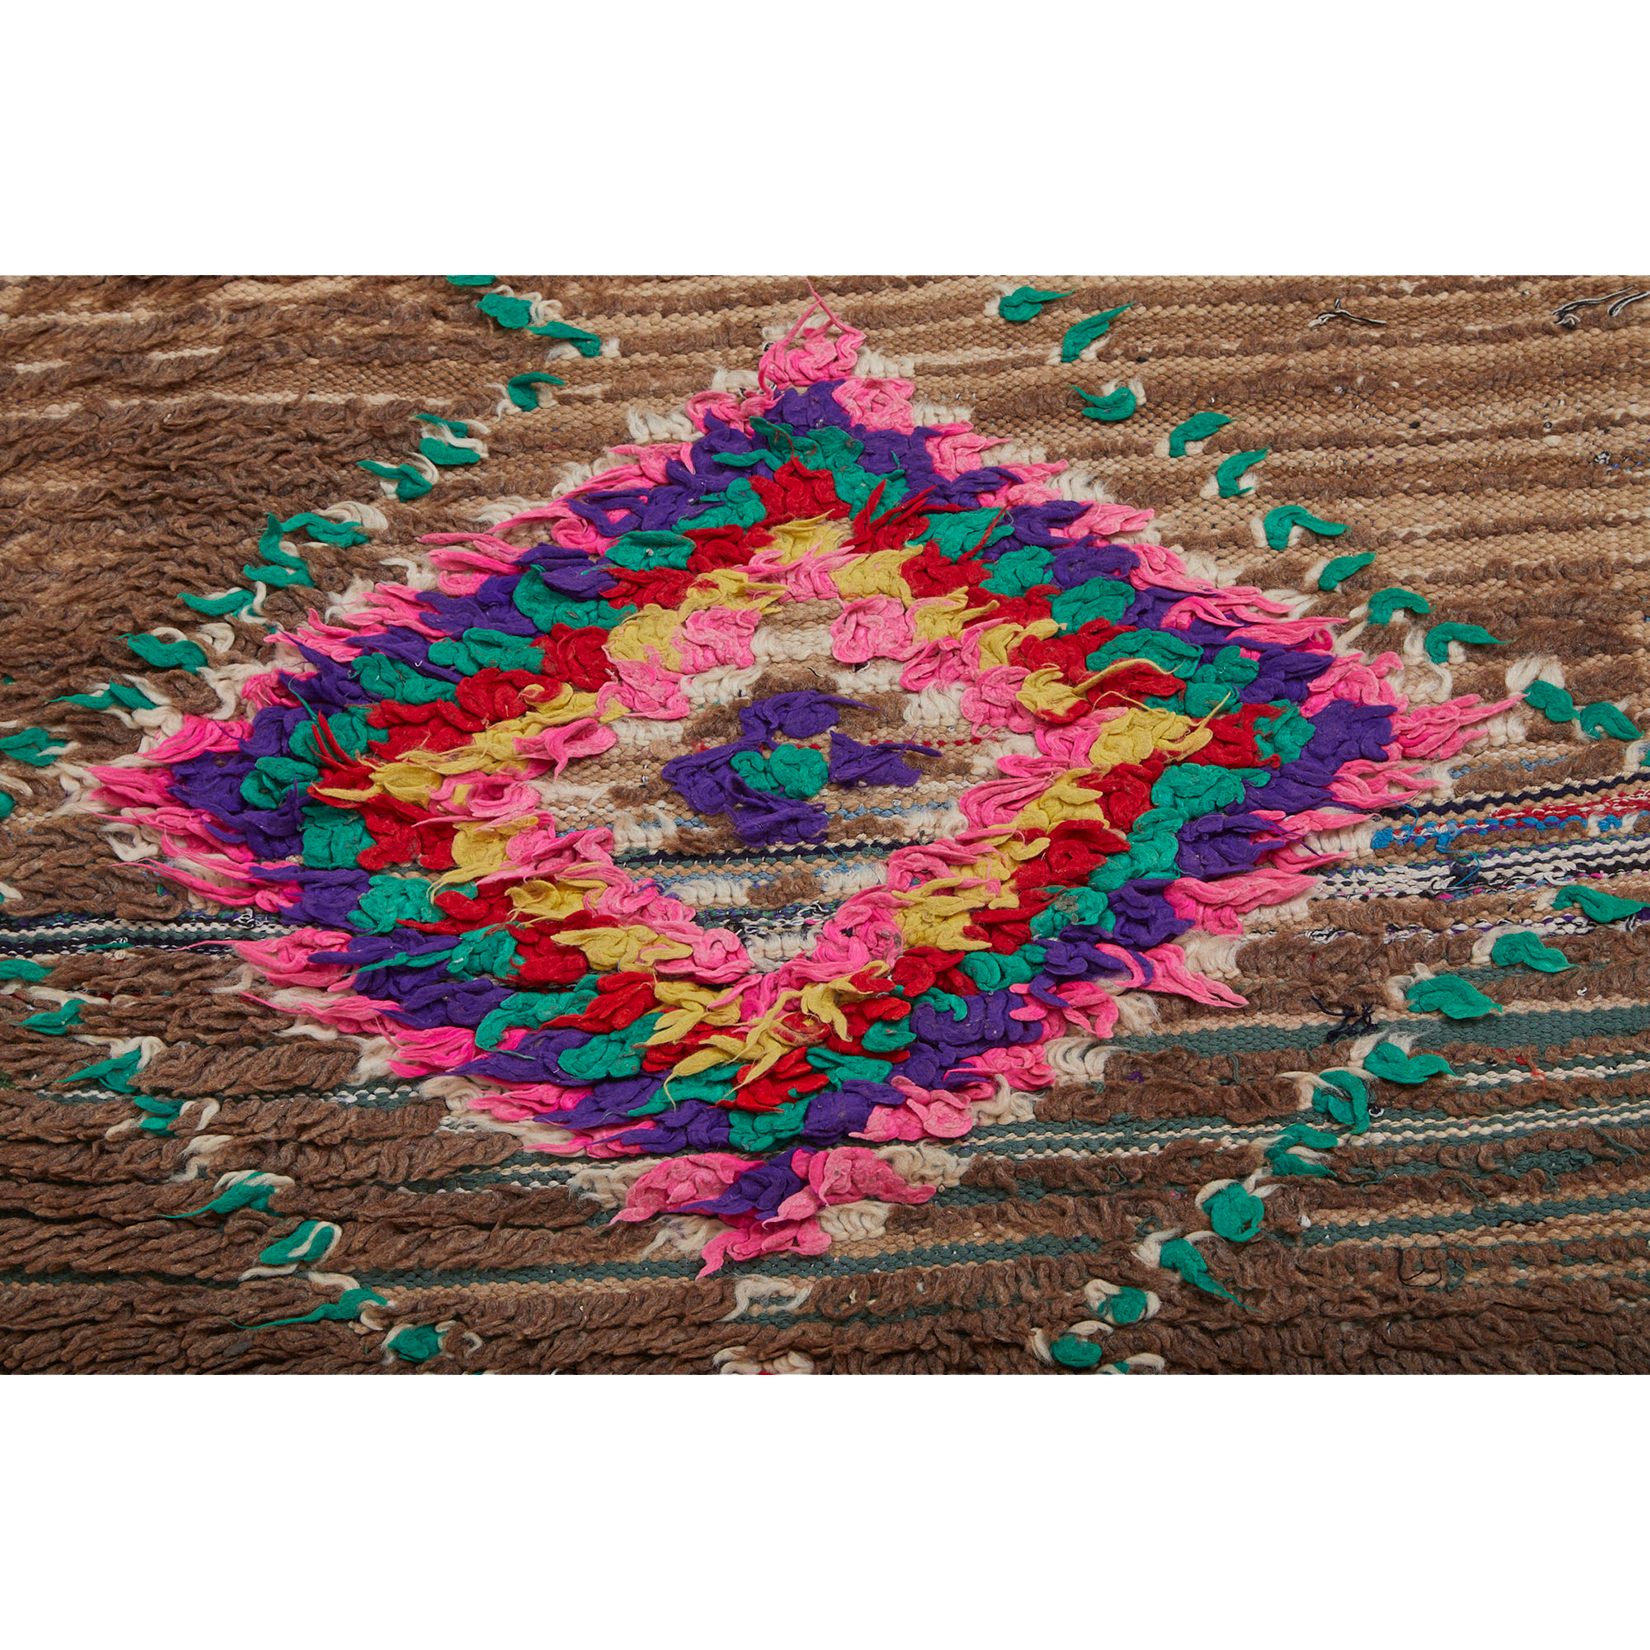 Authentic Moroccan rag rug with diamond motifs - Kantara | Moroccan Rugs